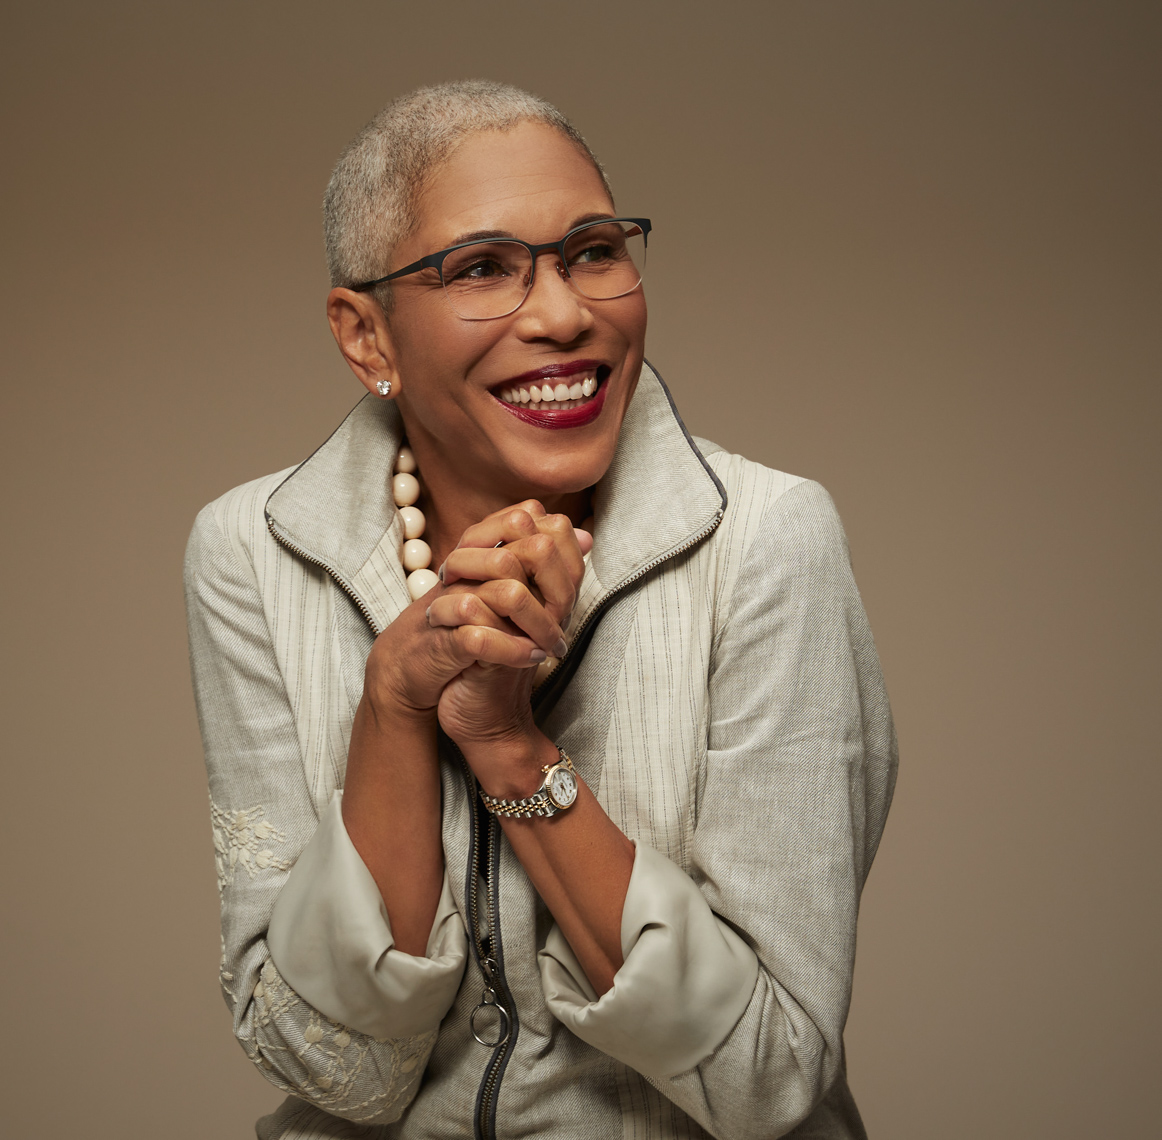 Silver haired woman in white jacket and pearls and glasses hands clasped with big smile and wearing glasses